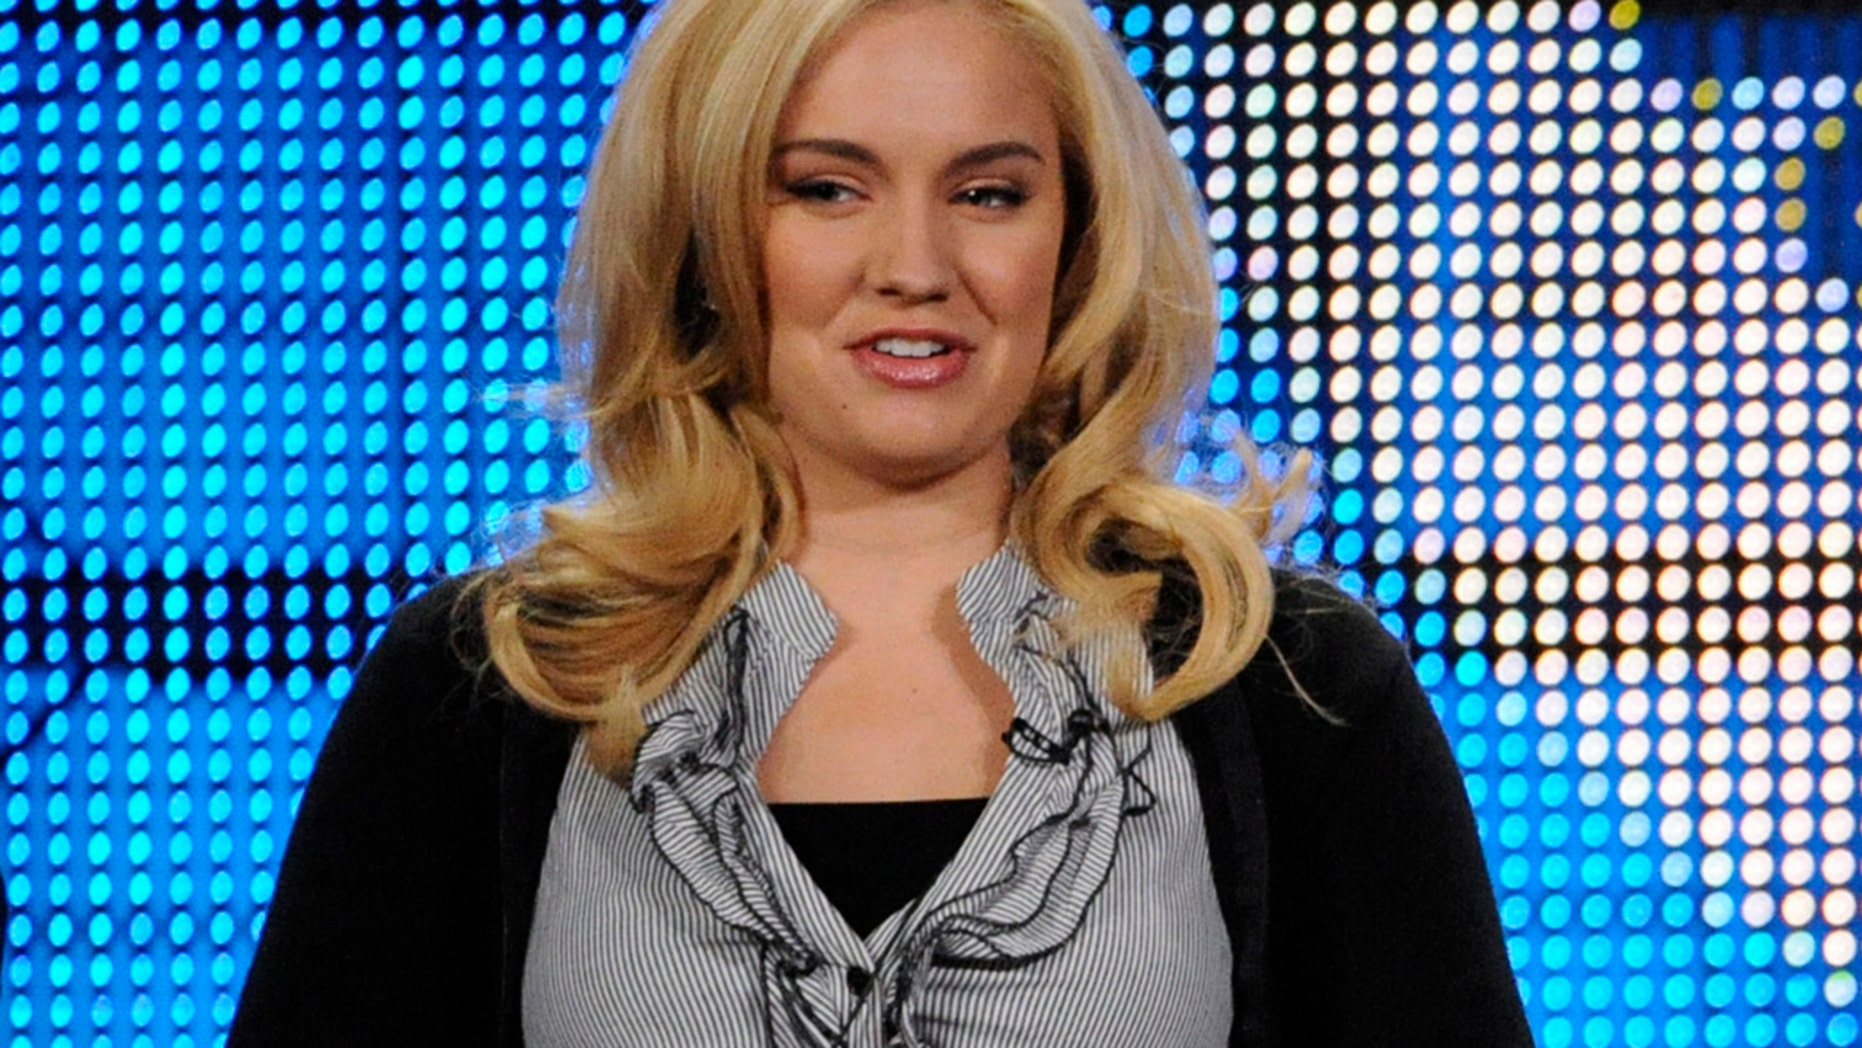 """Tiffany Thornton answers questions during the panel for the Disney Channel Series """"Sonny With a Chance"""" at the Television Critics Association winter press tour in Los Angeles January 16, 2009."""